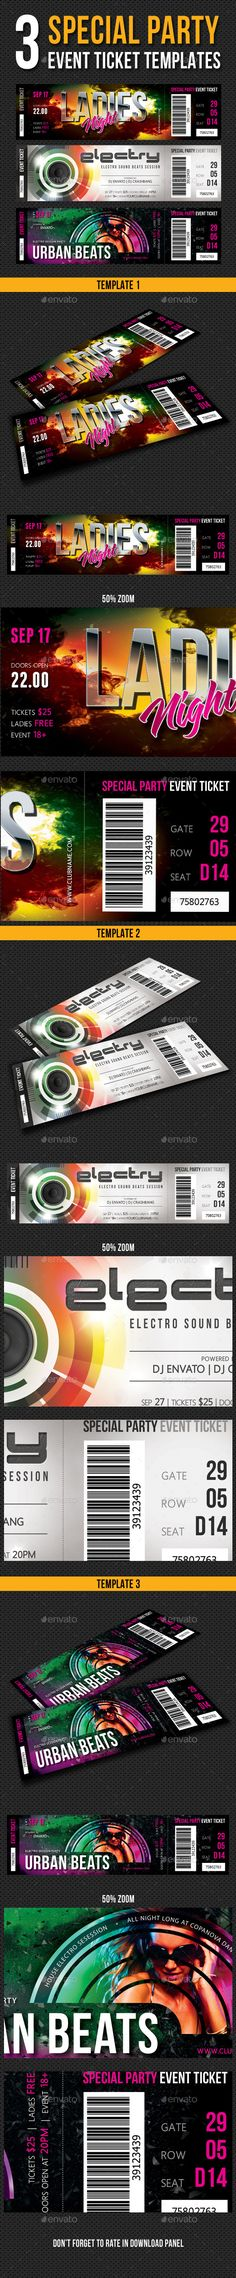 Retro Coupon Coupon and Retro - party tickets templates